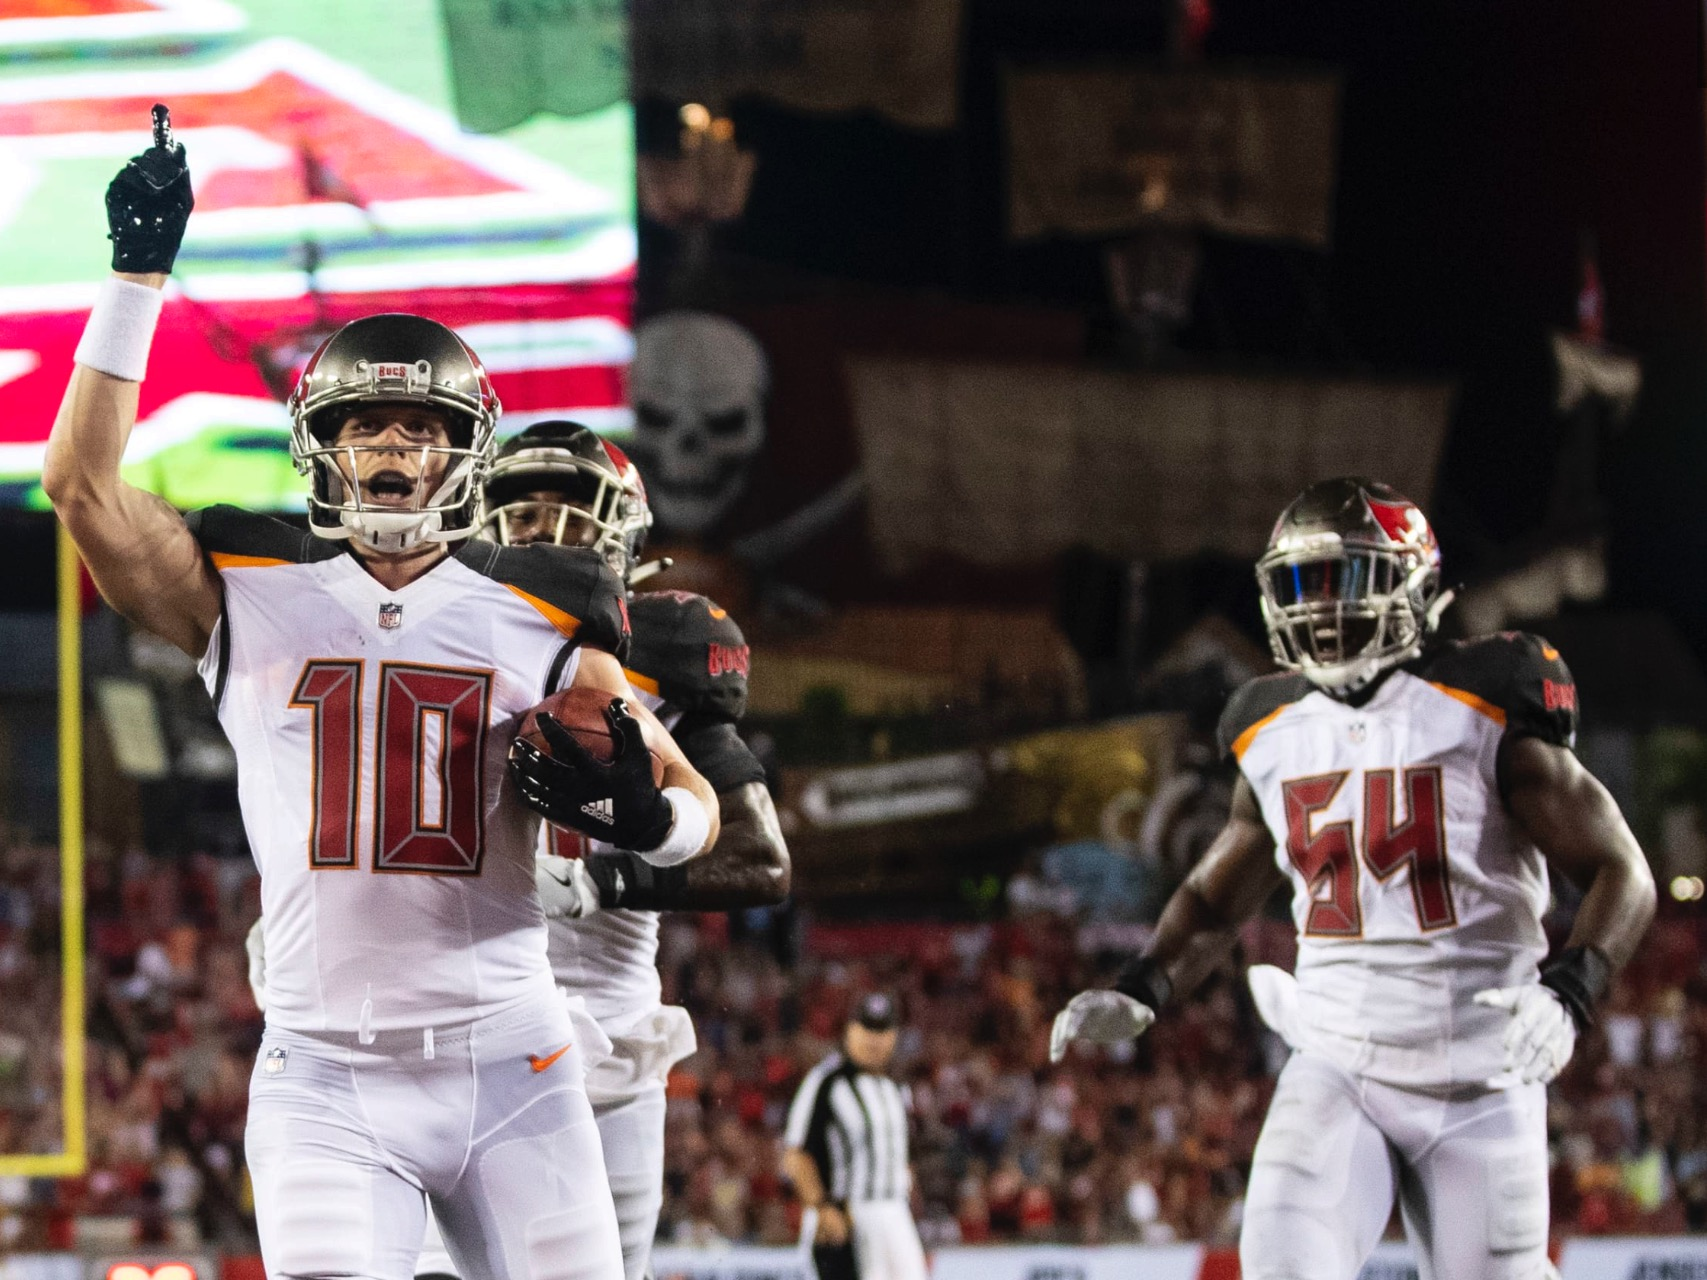 NFC South Preview – Part 1 – Tampa Bay Buccaneers